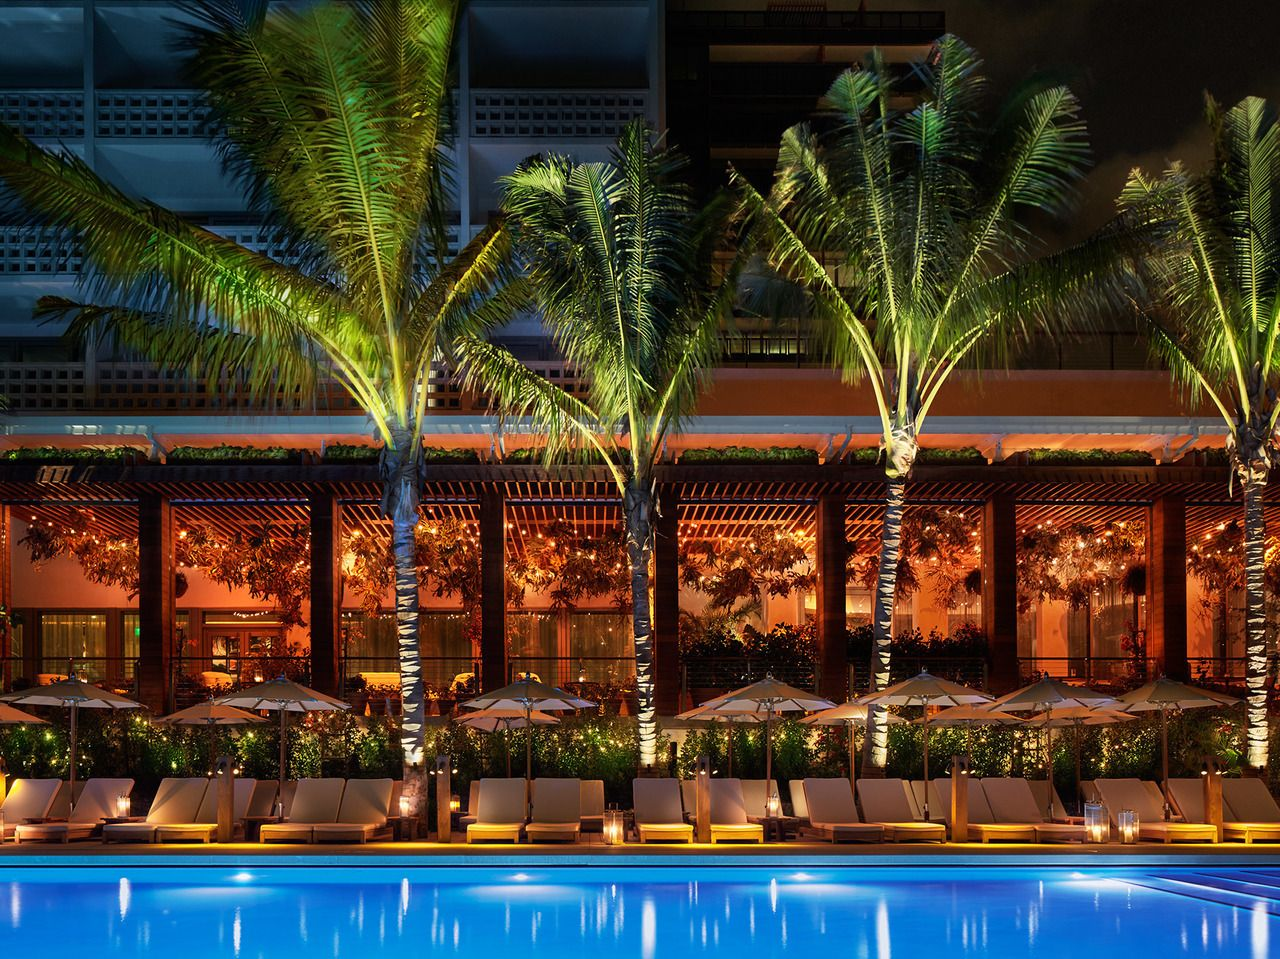 Edition hotel in Miami by the pool at night